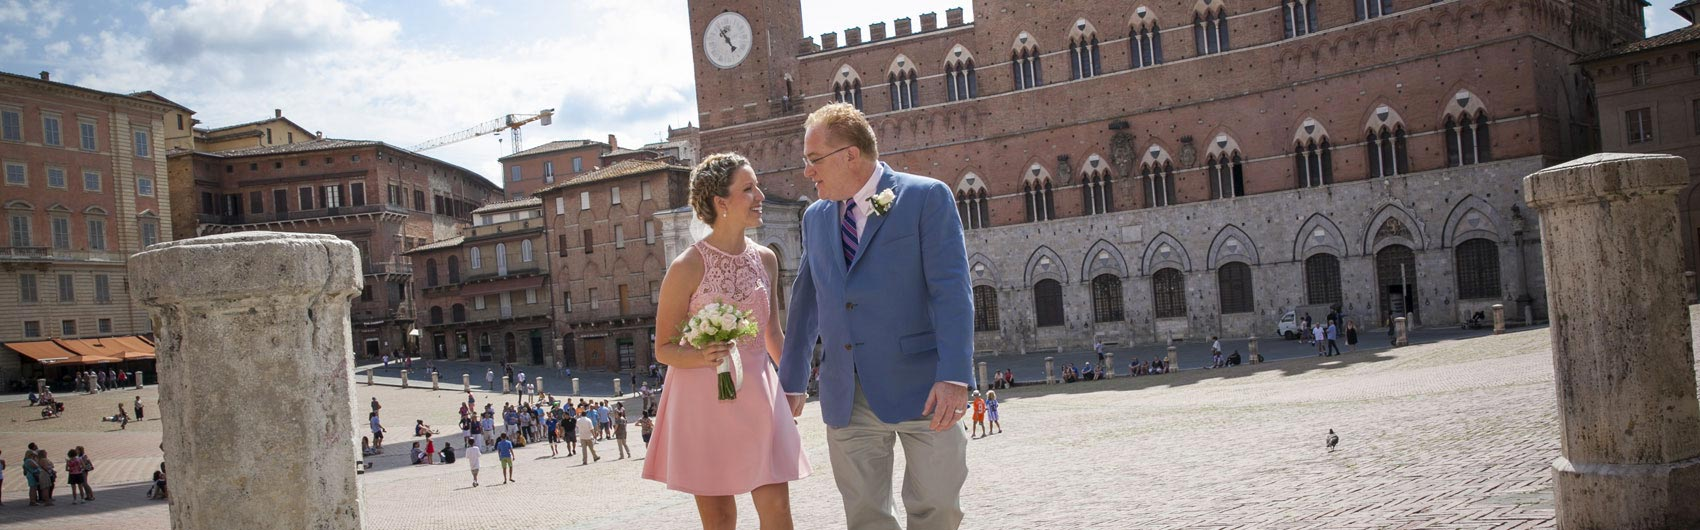 civil-wedding-siena3